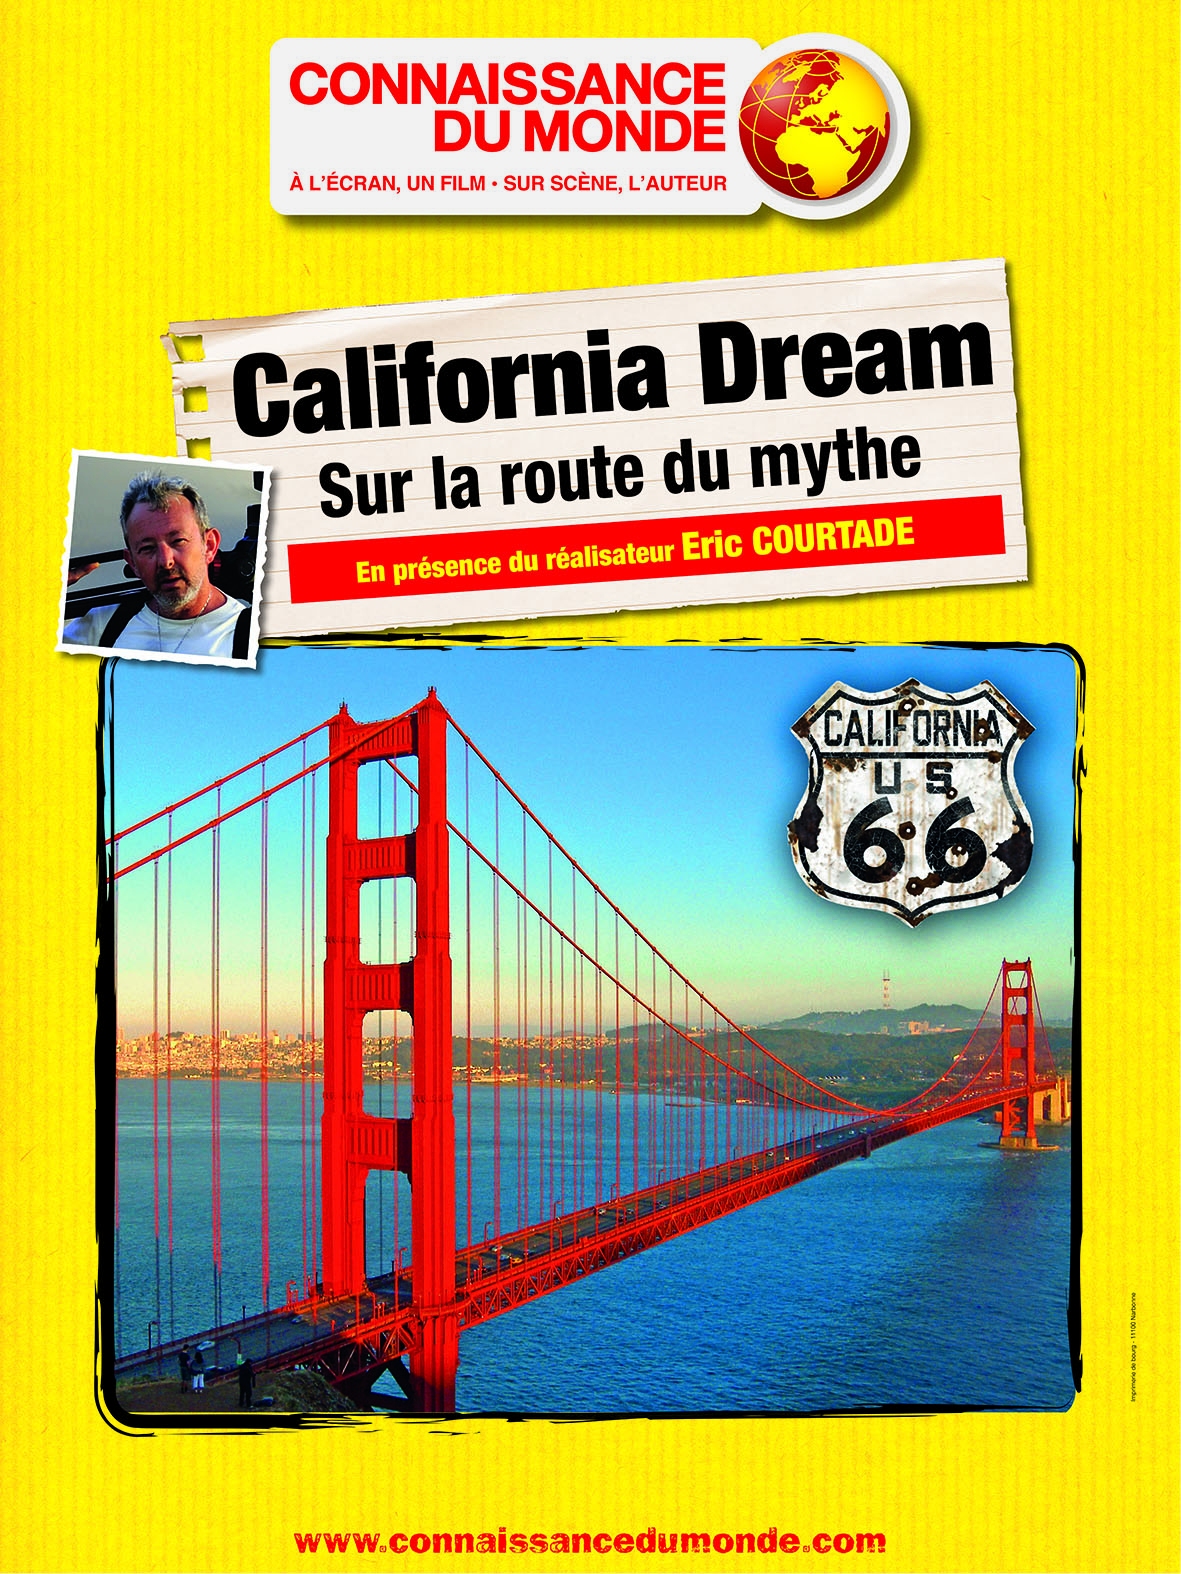 California Dream, Sur la route du mythe